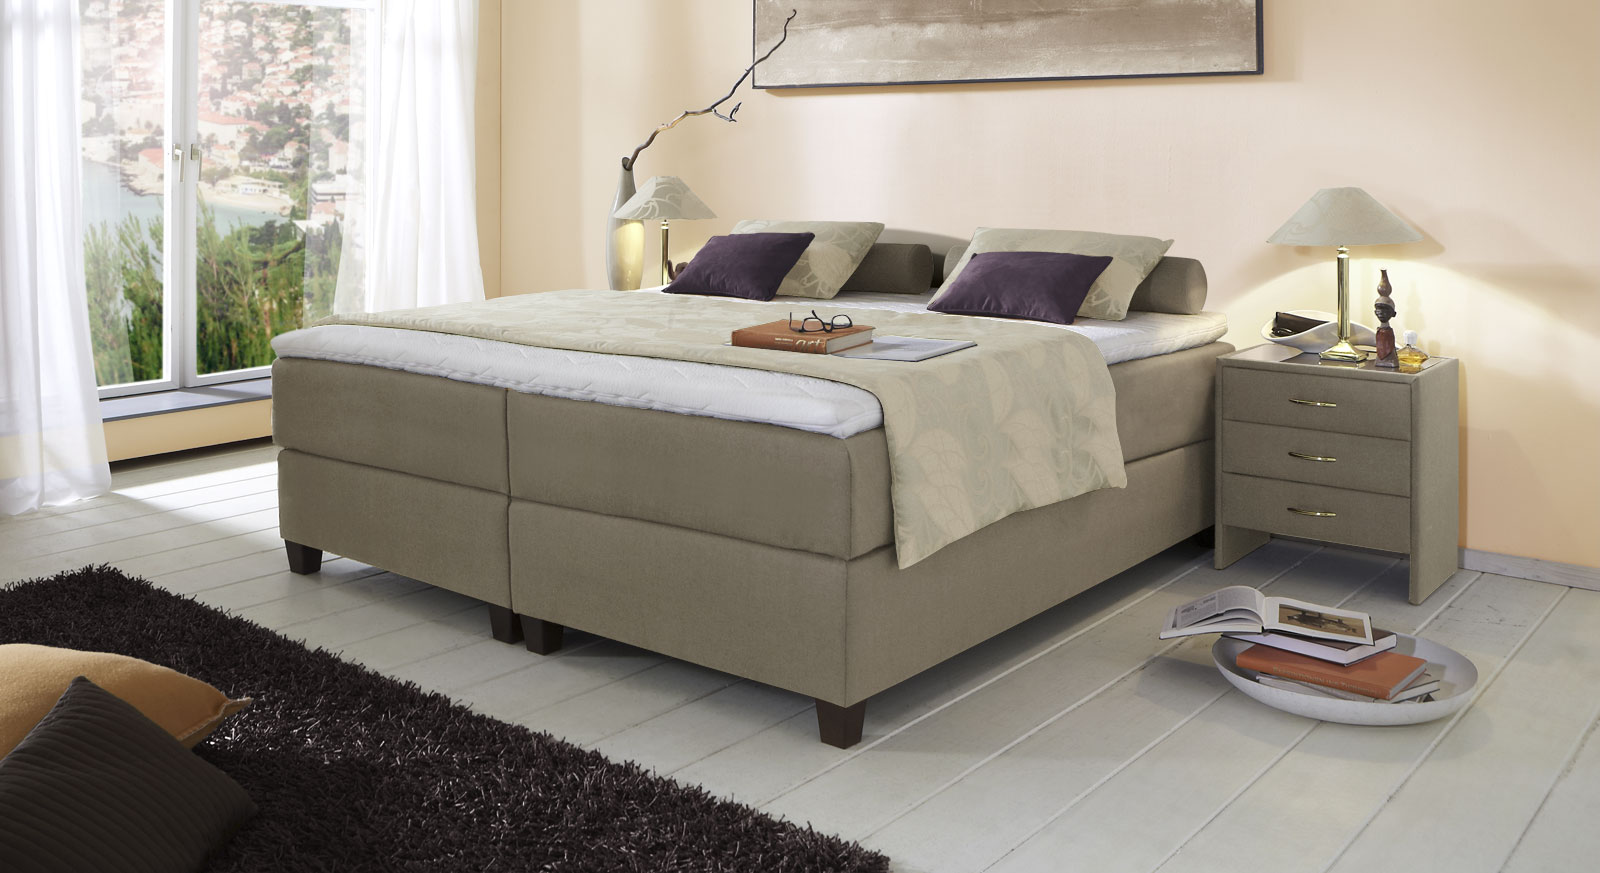 Boxspringliege Luciano in 66 cm Höhe mit Stoffbezug in Taupe